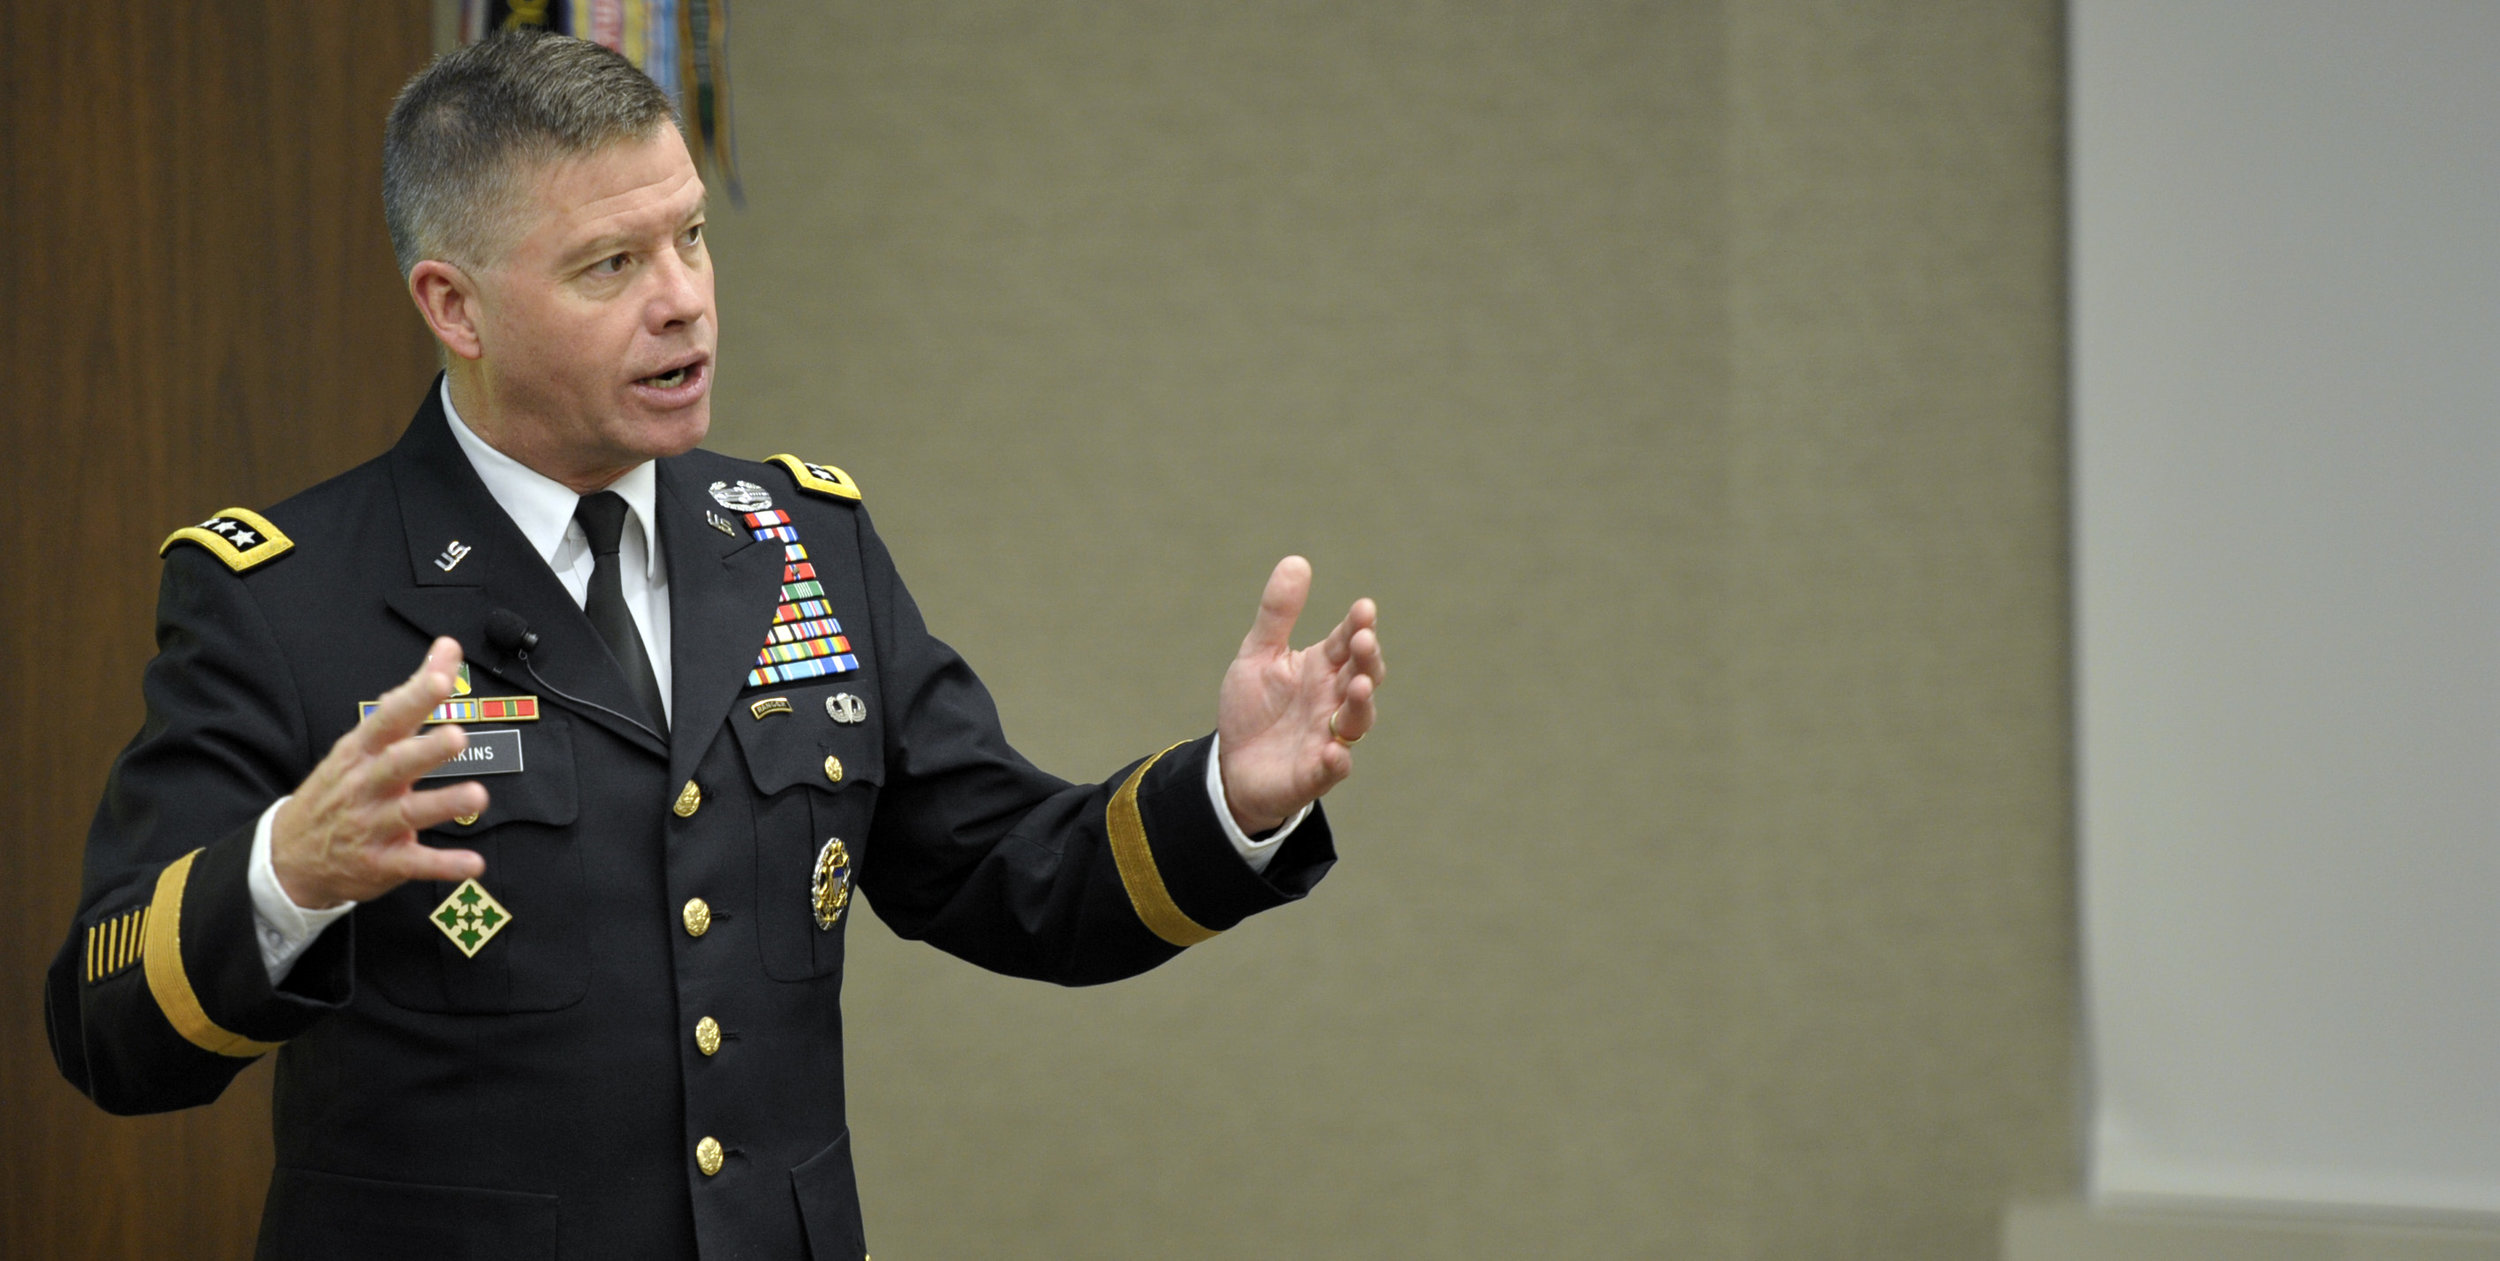 """Speaking at breakfast hosted by the Association of the U.S. Army's Institute of Land Warfare, Gen. David Perkins, U.S. Army Training and Doctrine Command commanding general, said senior commanders will have to learn to give orders """"broad enough so when and if you lose communication,"""" the commander on the battlefield will understand and follow command intent. (AUSA News)"""